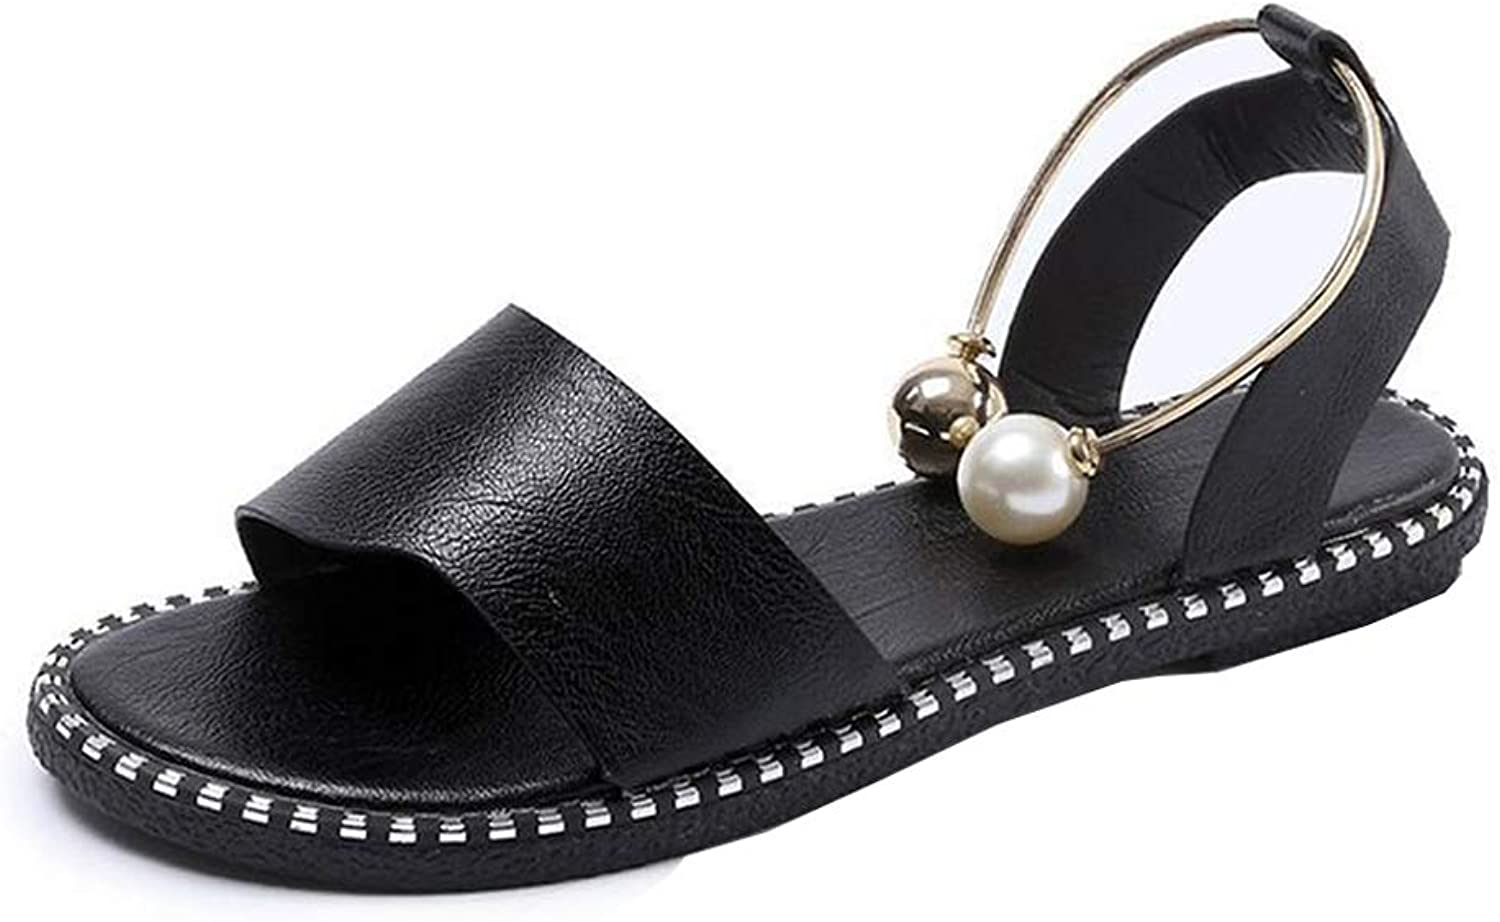 HEDDK Summer Ladies Sandals Casual Pearl Buckle Round Head Flat Sandals Peep Toe Beach Sandals Plus Size 35-39